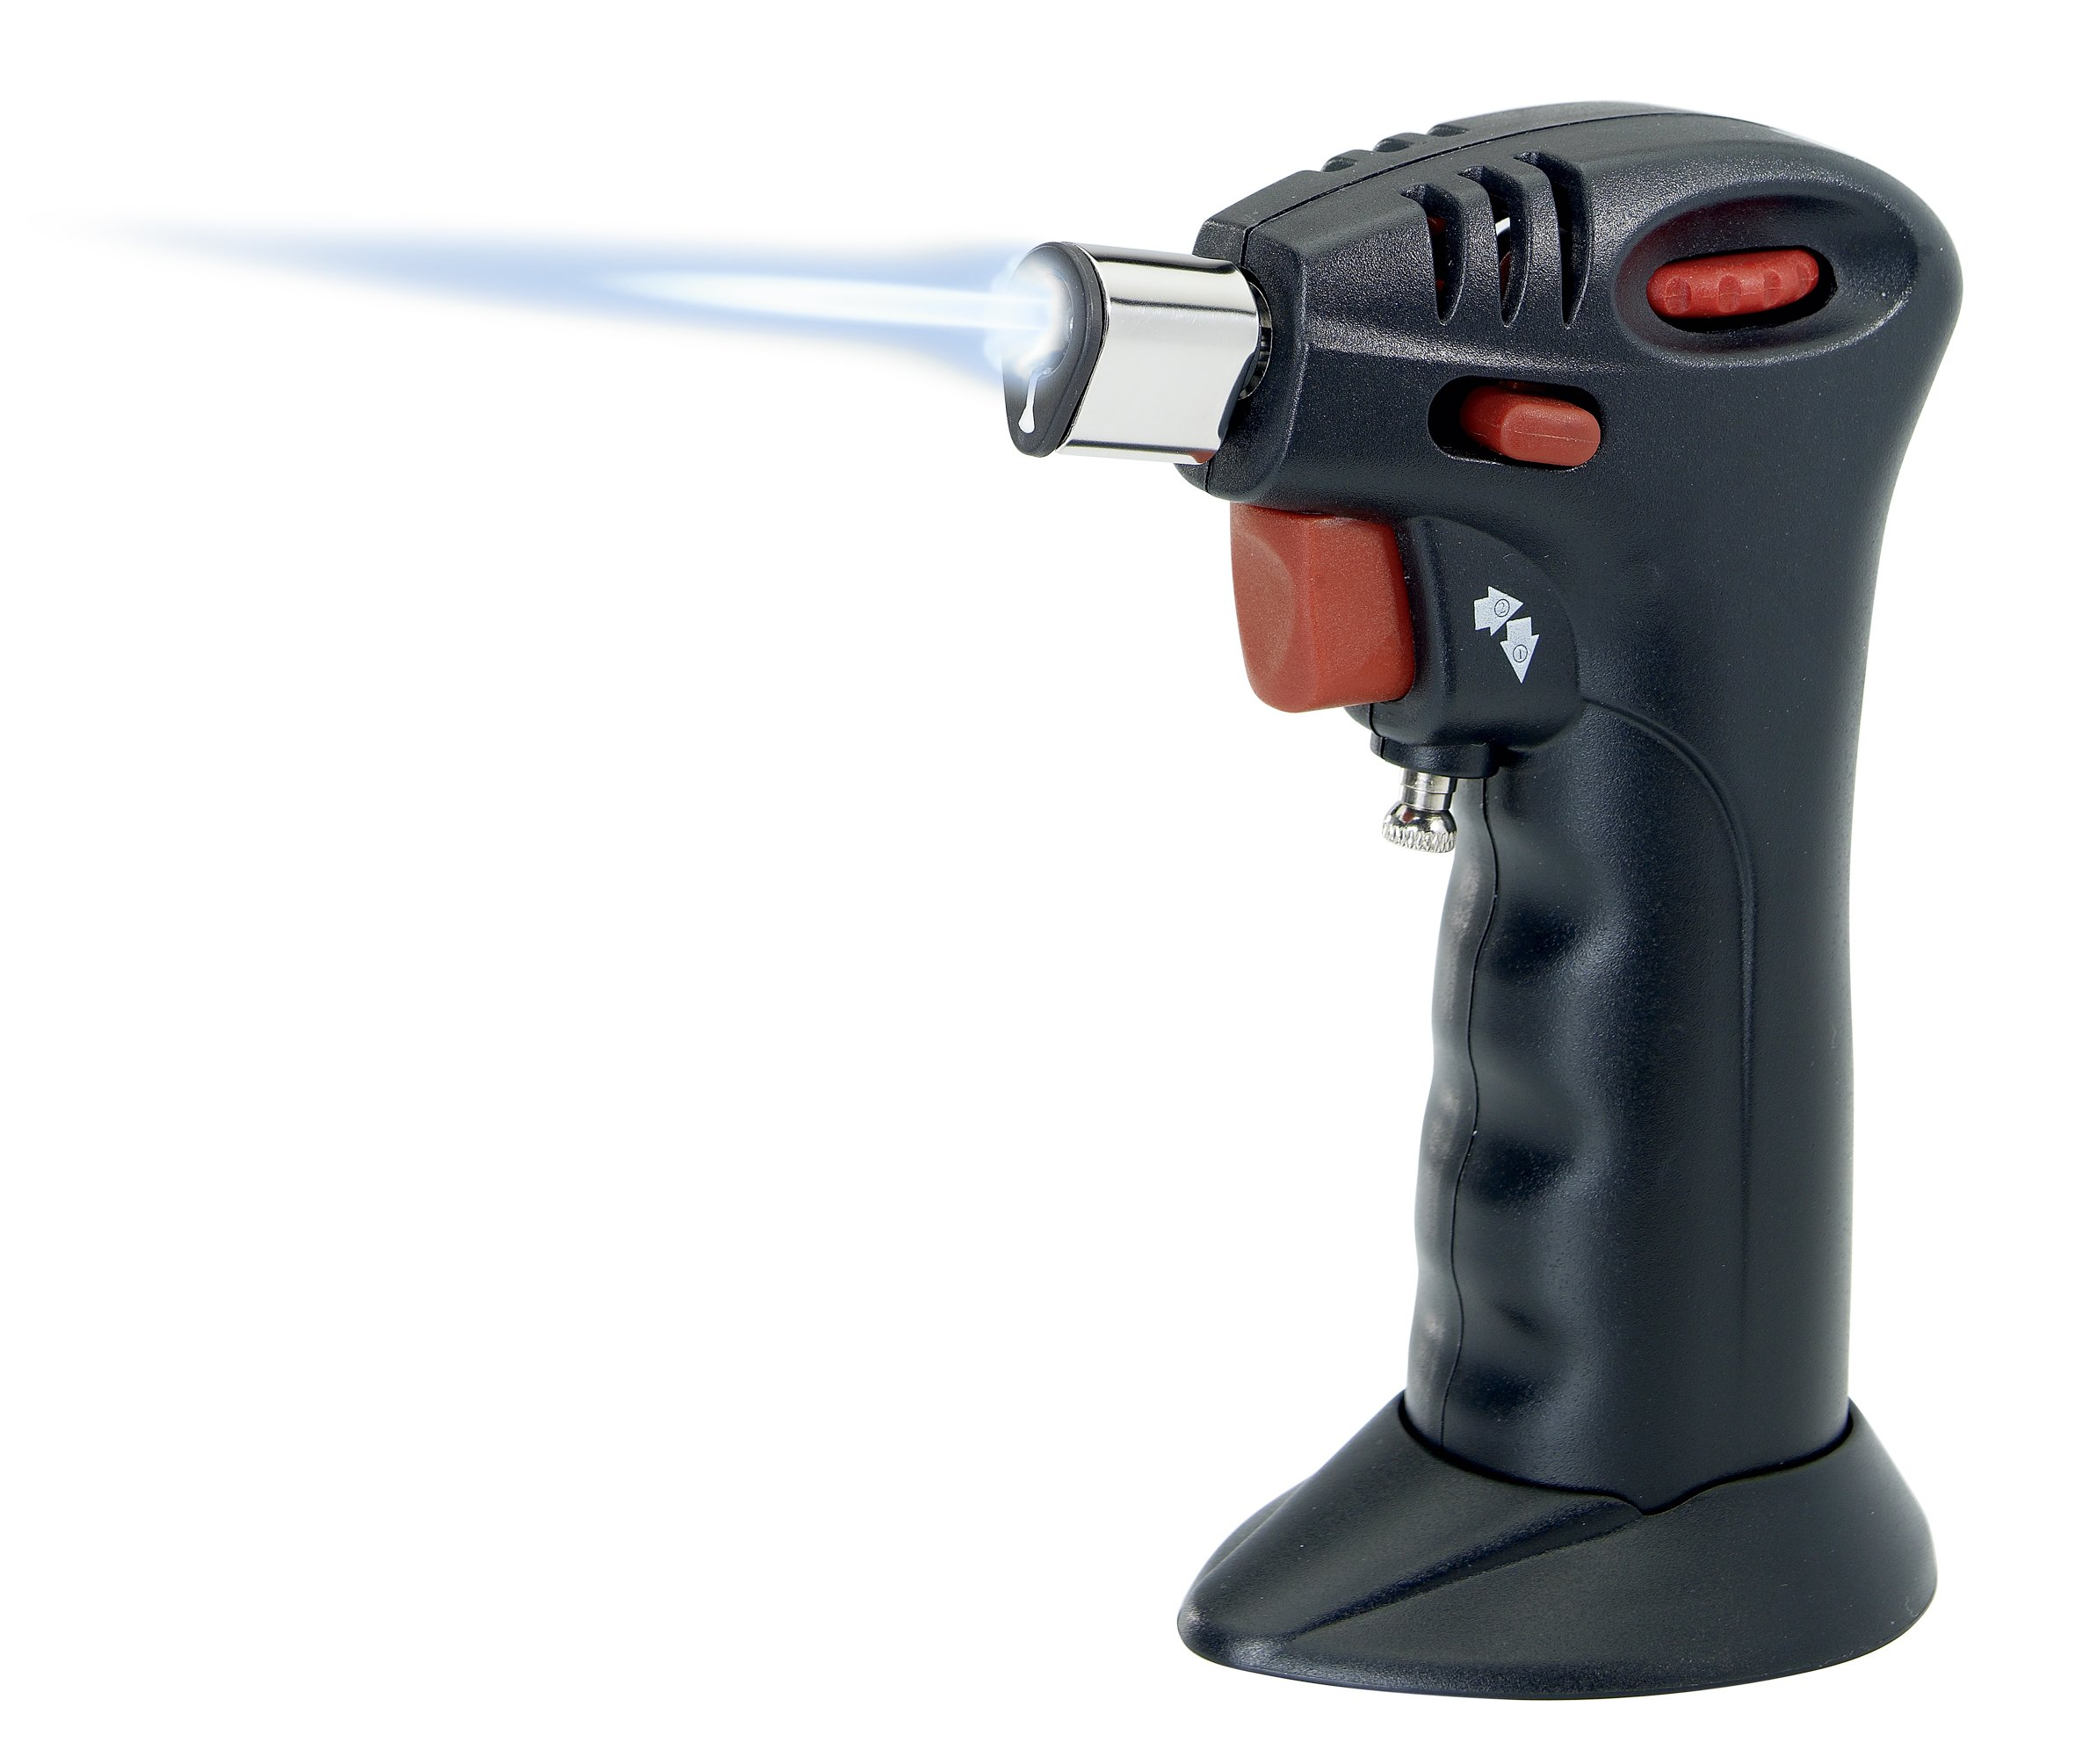 Westmark Germany Professional Culinary Butane Torch with Safety Lock and Adjustable Flame (Black)